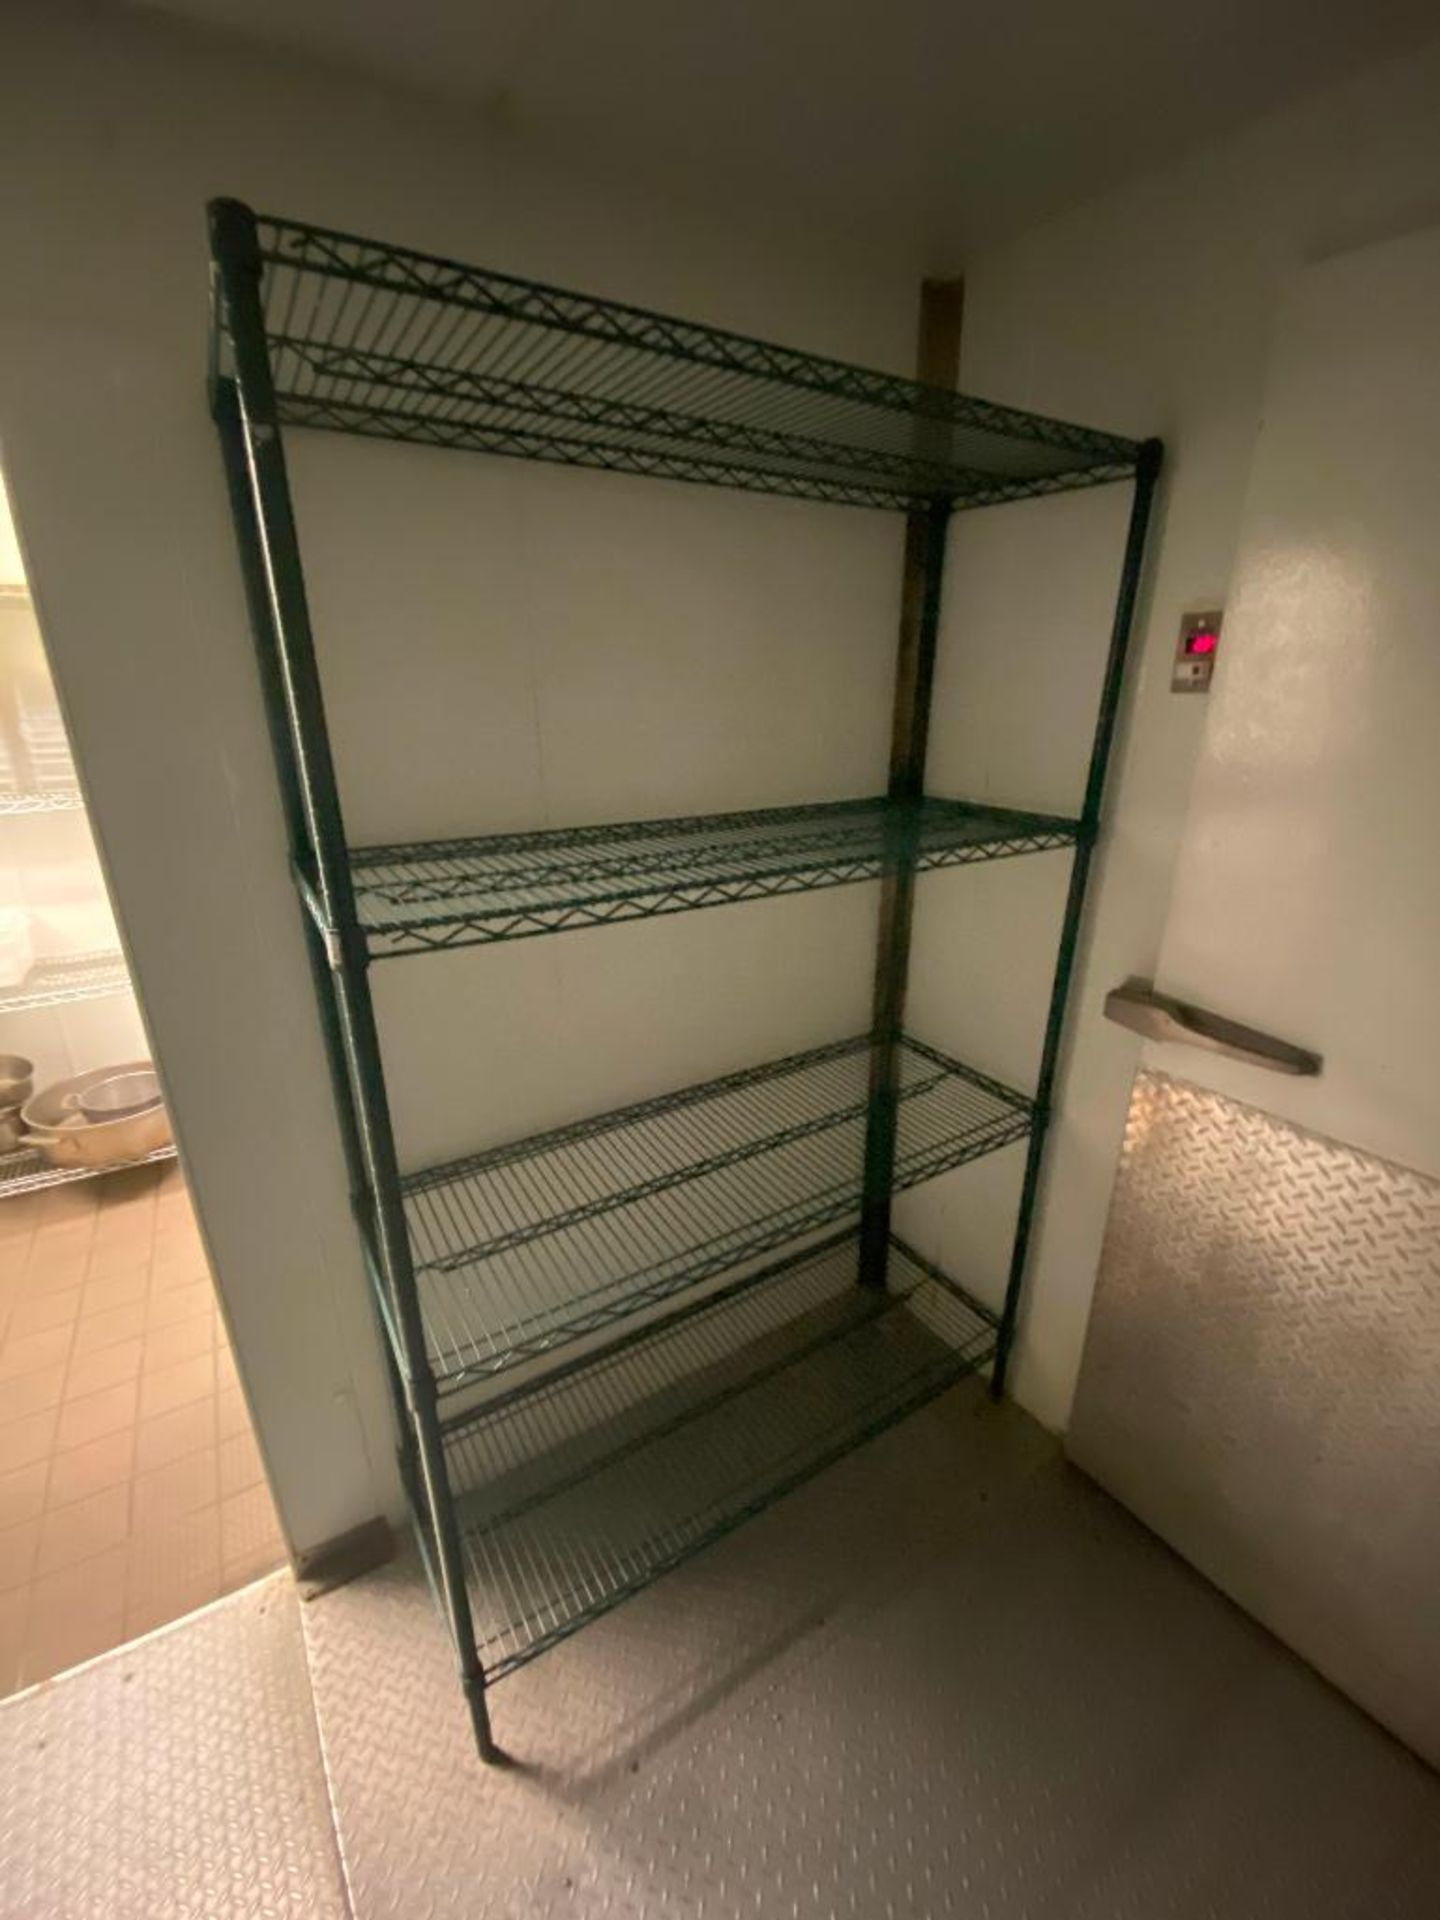 LOT OF (4) GREEN WIRE STORAGE RACKS, ASSORTED SIZES - Image 3 of 4